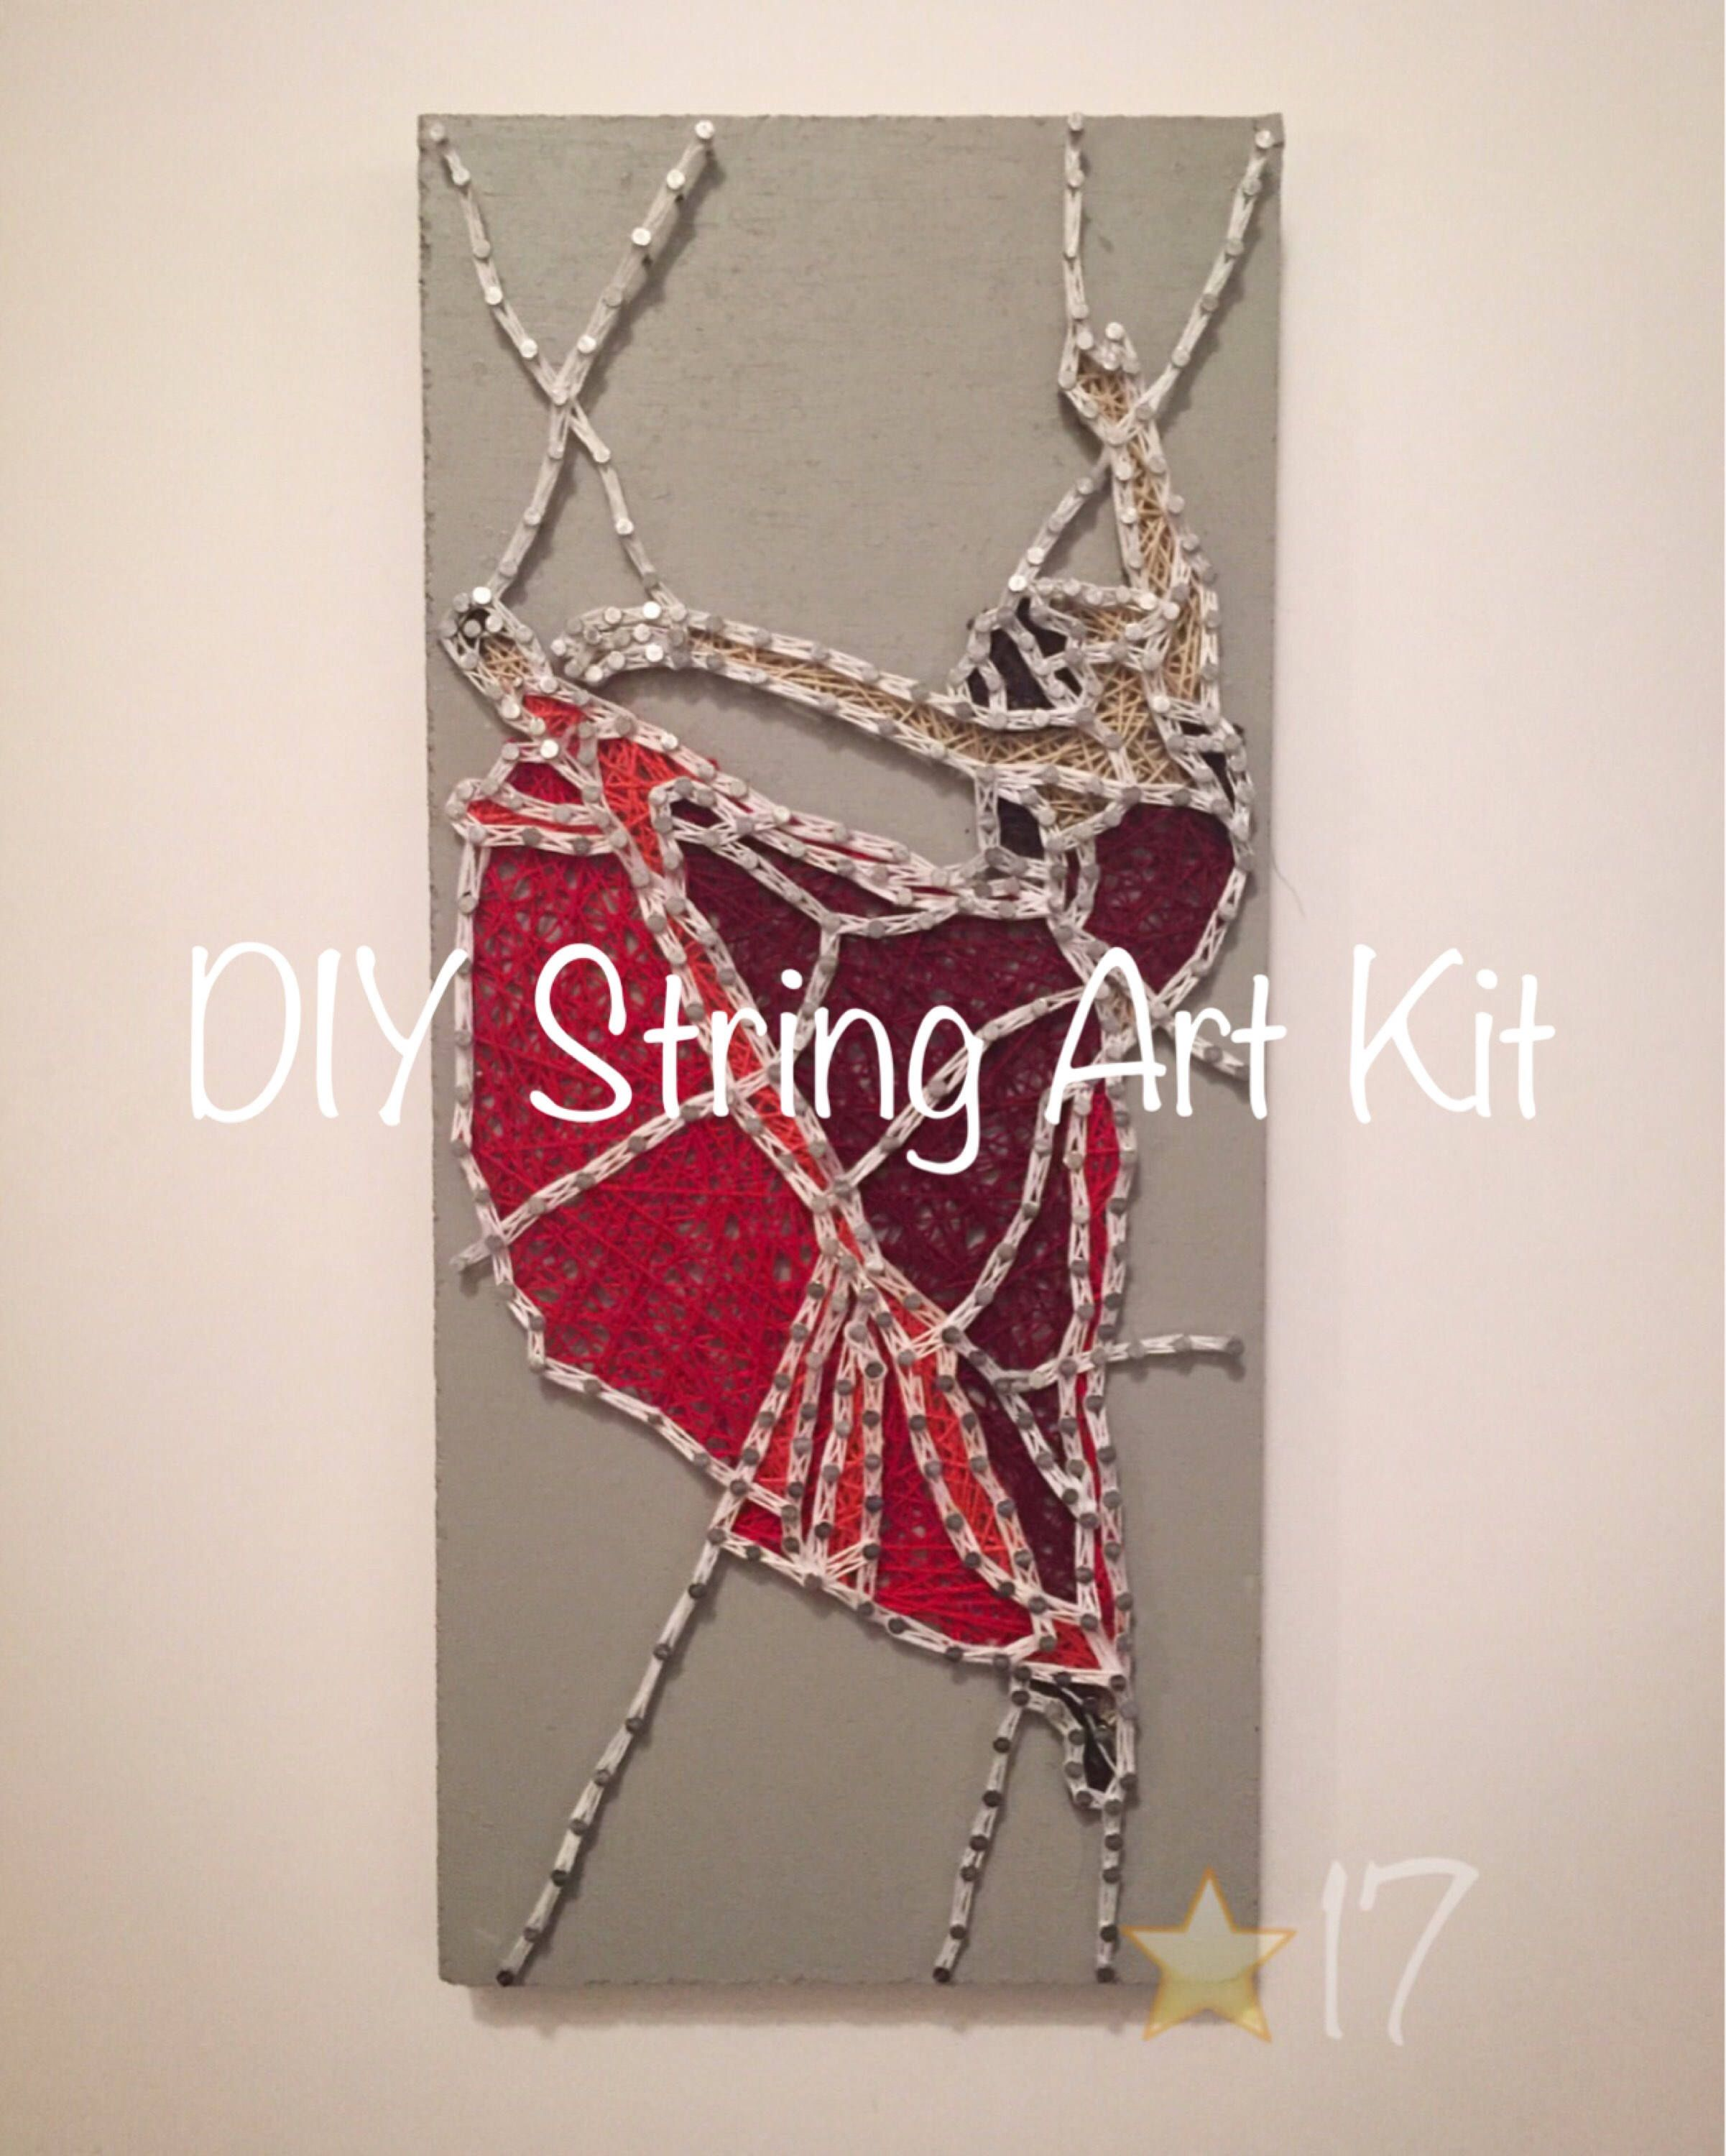 Diy Dancer String Art Kit, How To Stained Glass Effect